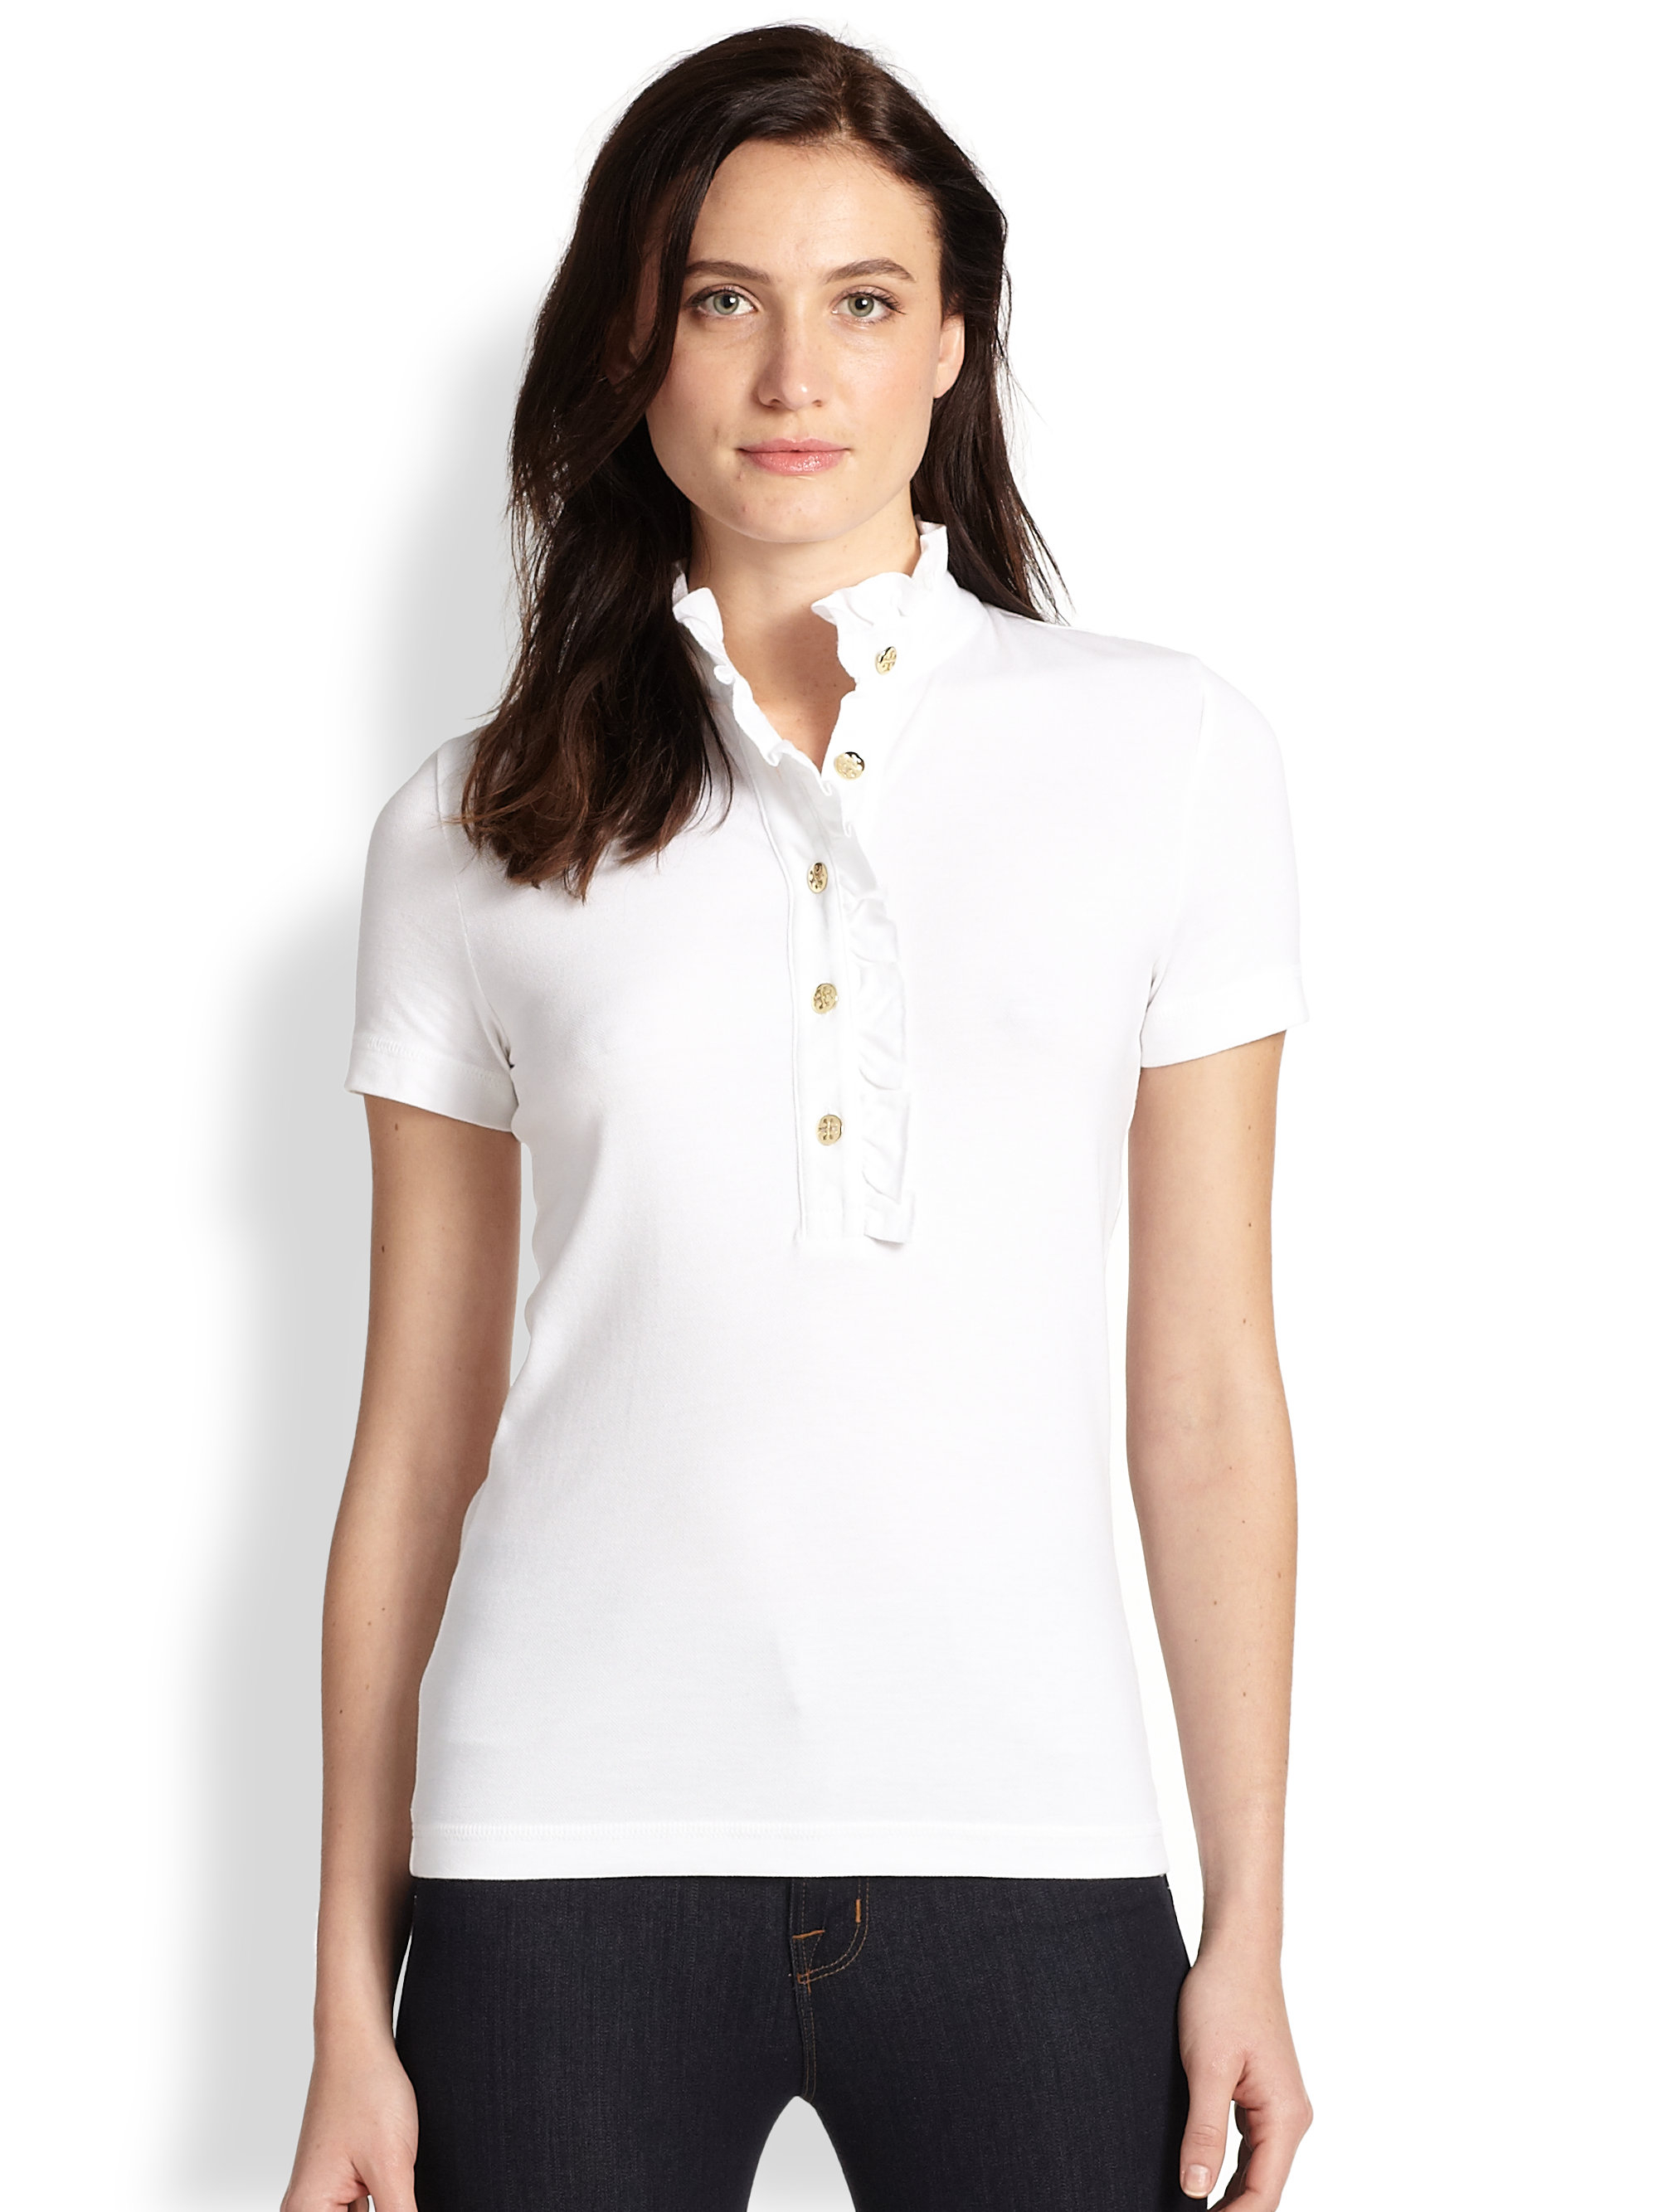 1a7c0f5fbe9 Lyst - Tory Burch Lidia Ruffled Polo Shirt in White